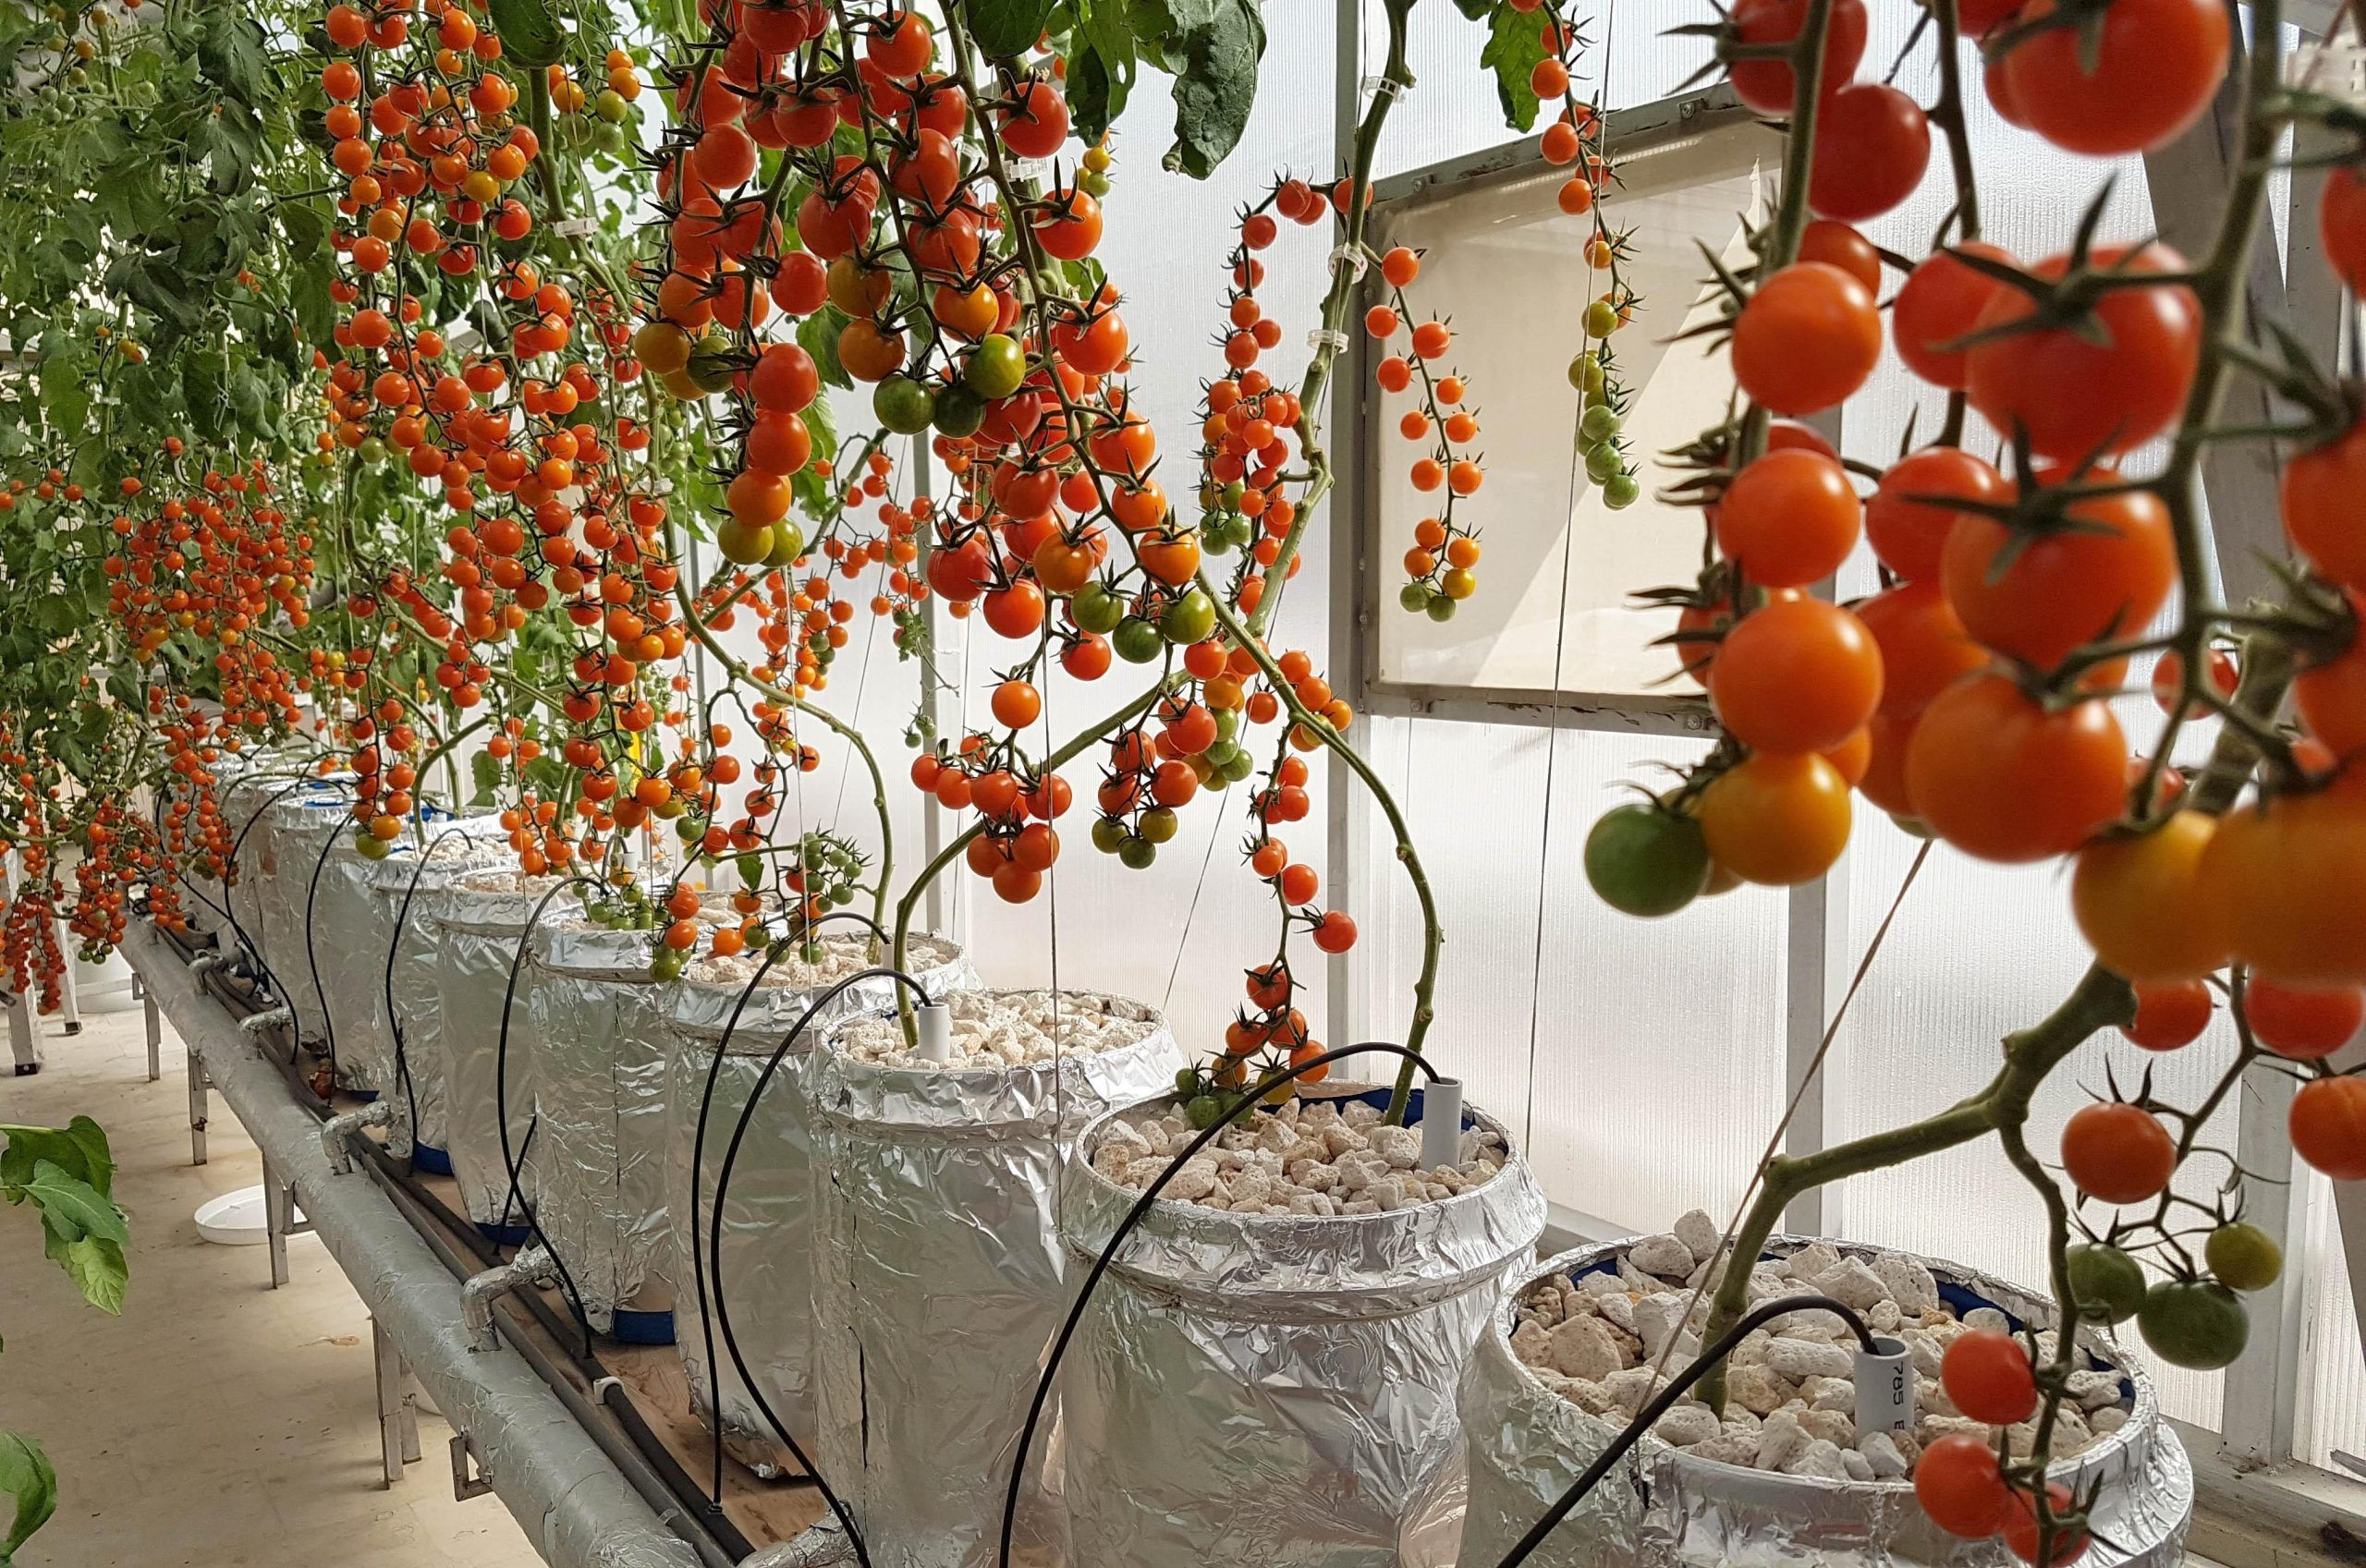 Sweet Cherry Tomatoes In Hydroponic Dutch Bucket System Growing In